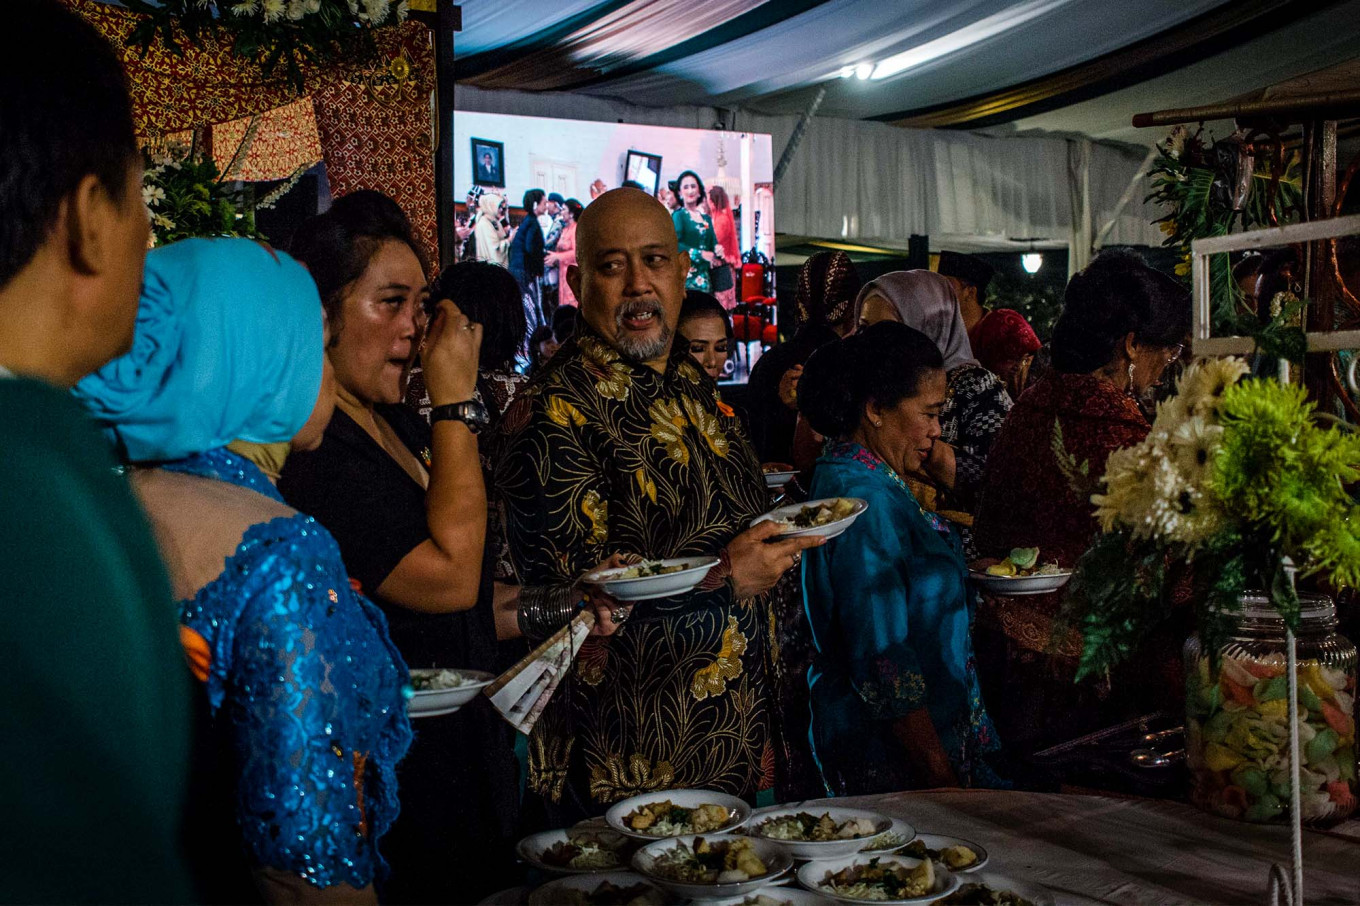 Famous comedian Indro Warkop (center) waits in line with other guests to grab something to eat. JP/Anggertimur Lanang Tinarbuko